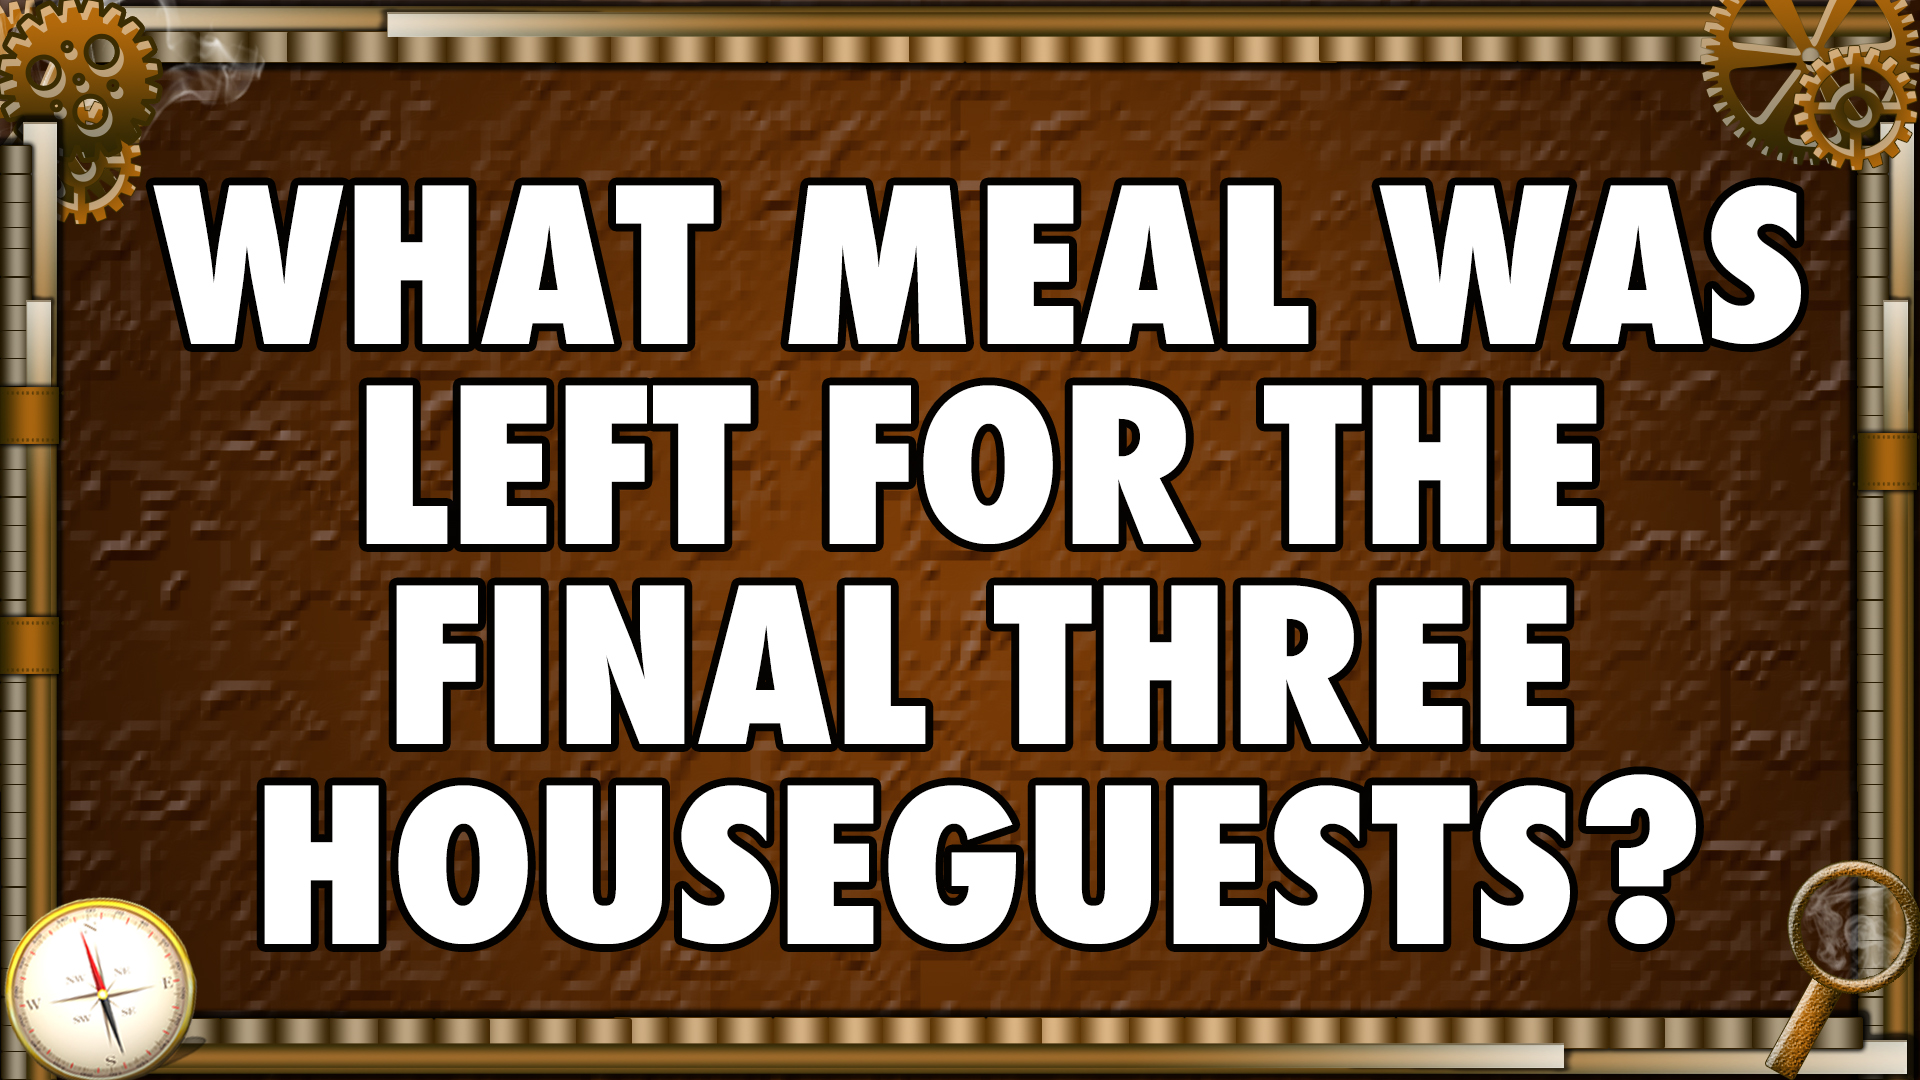 What meal was left for the final three Houseguests?